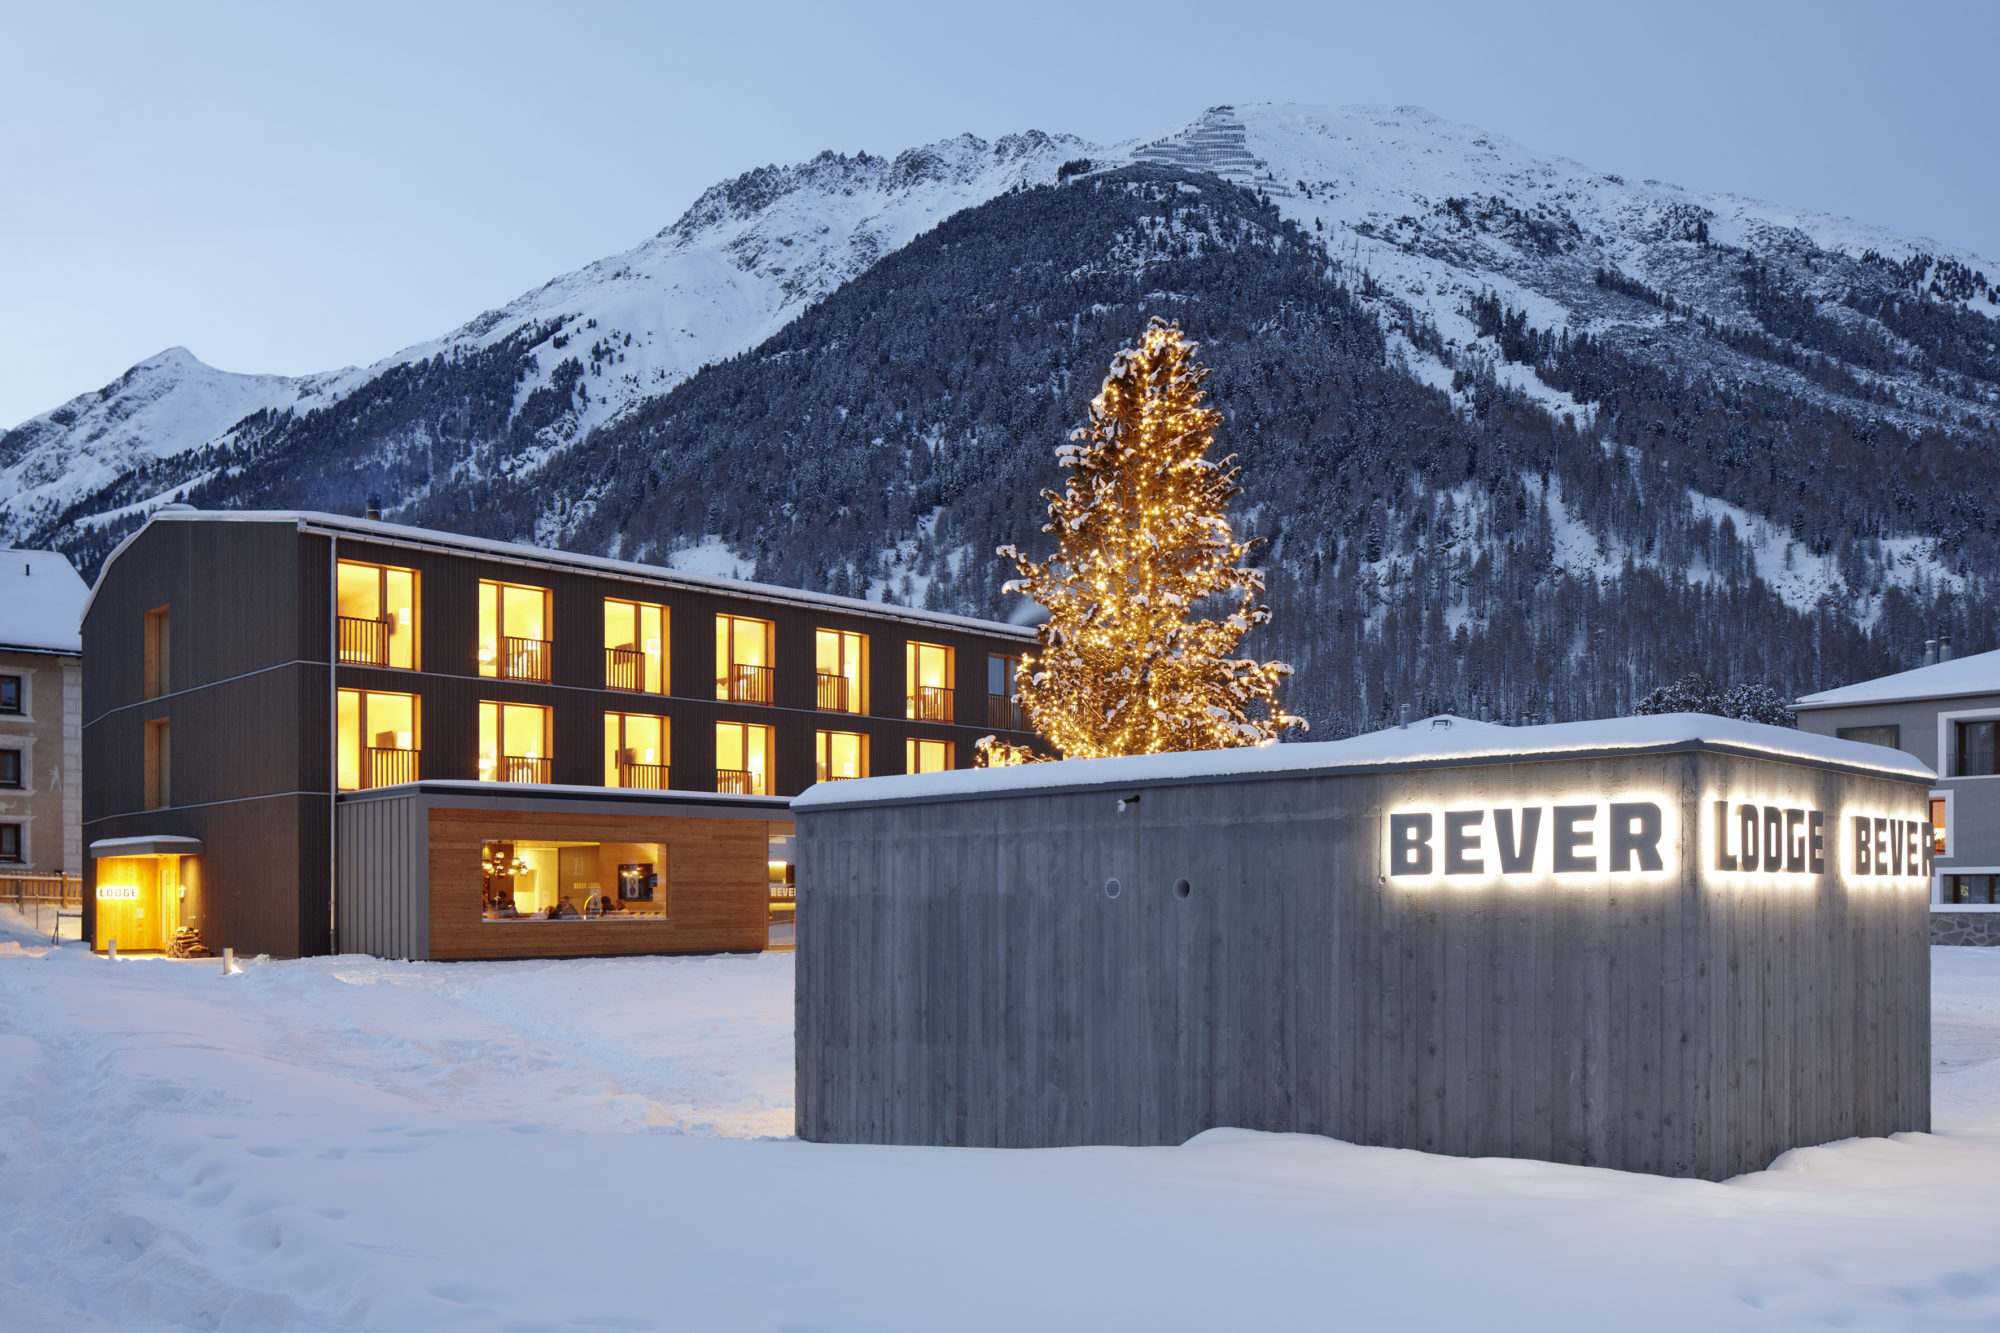 bever_lodge_022